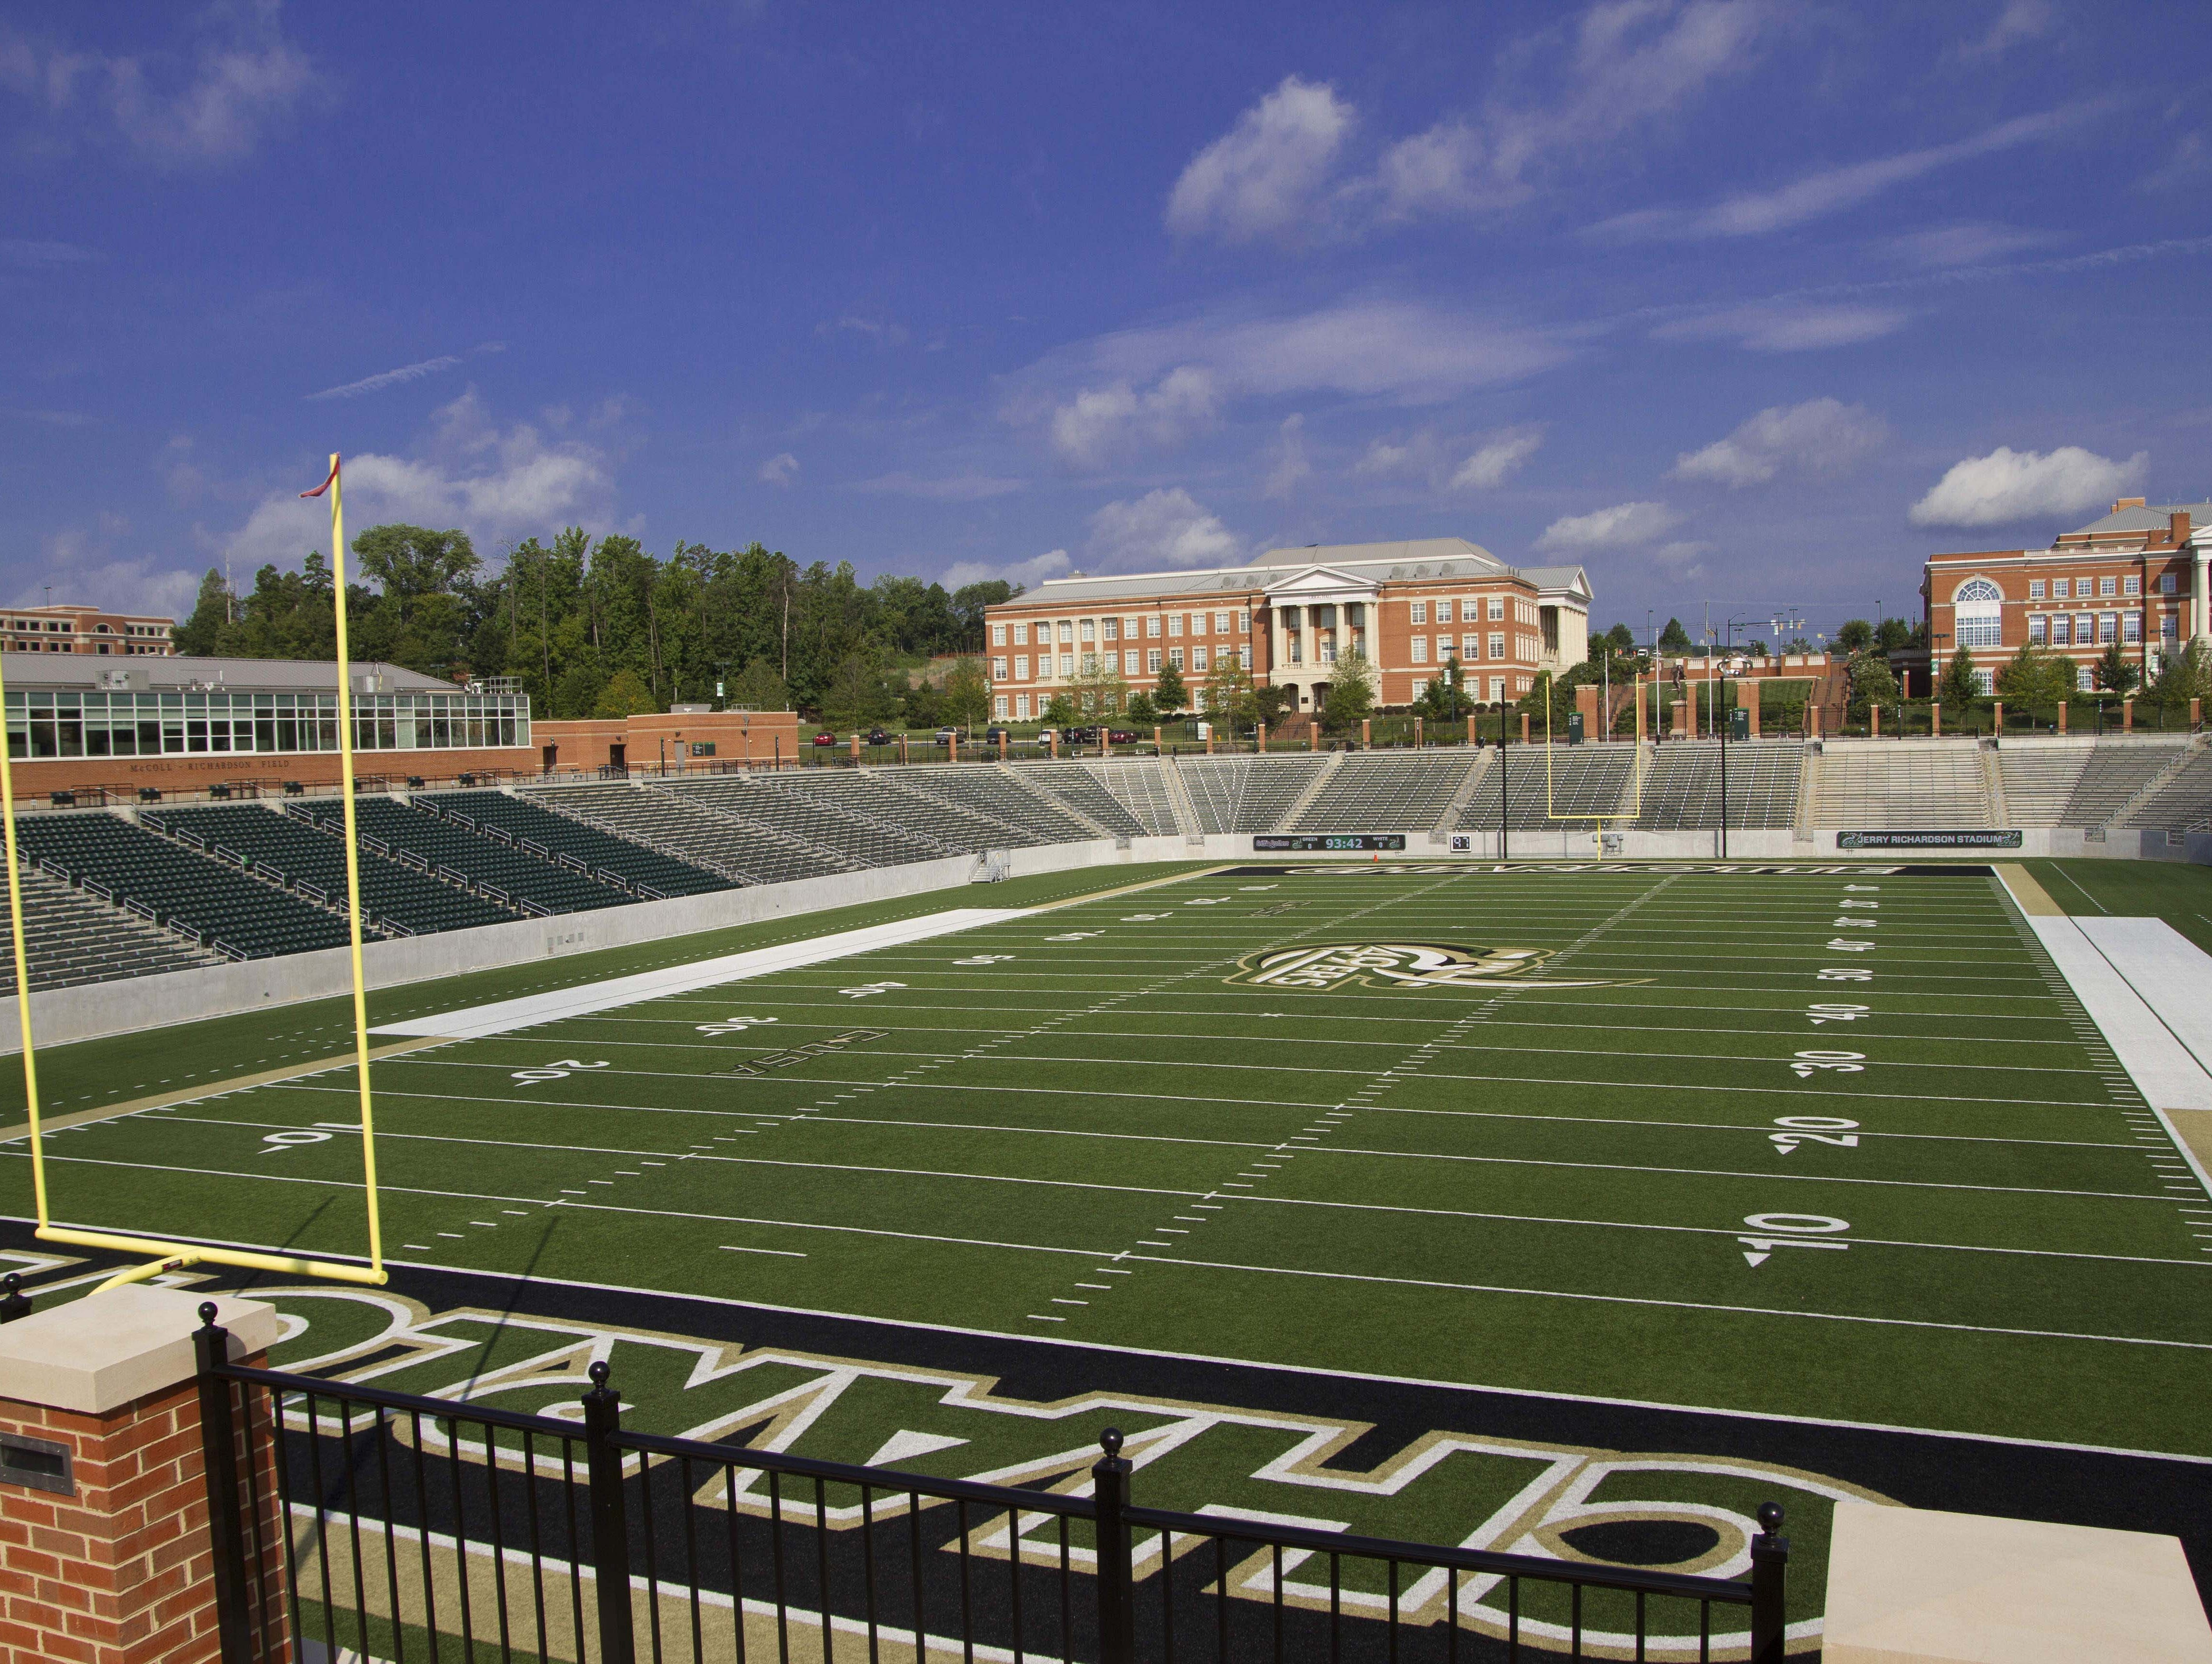 2013-08-09-richardson-stadium-charlotte-football